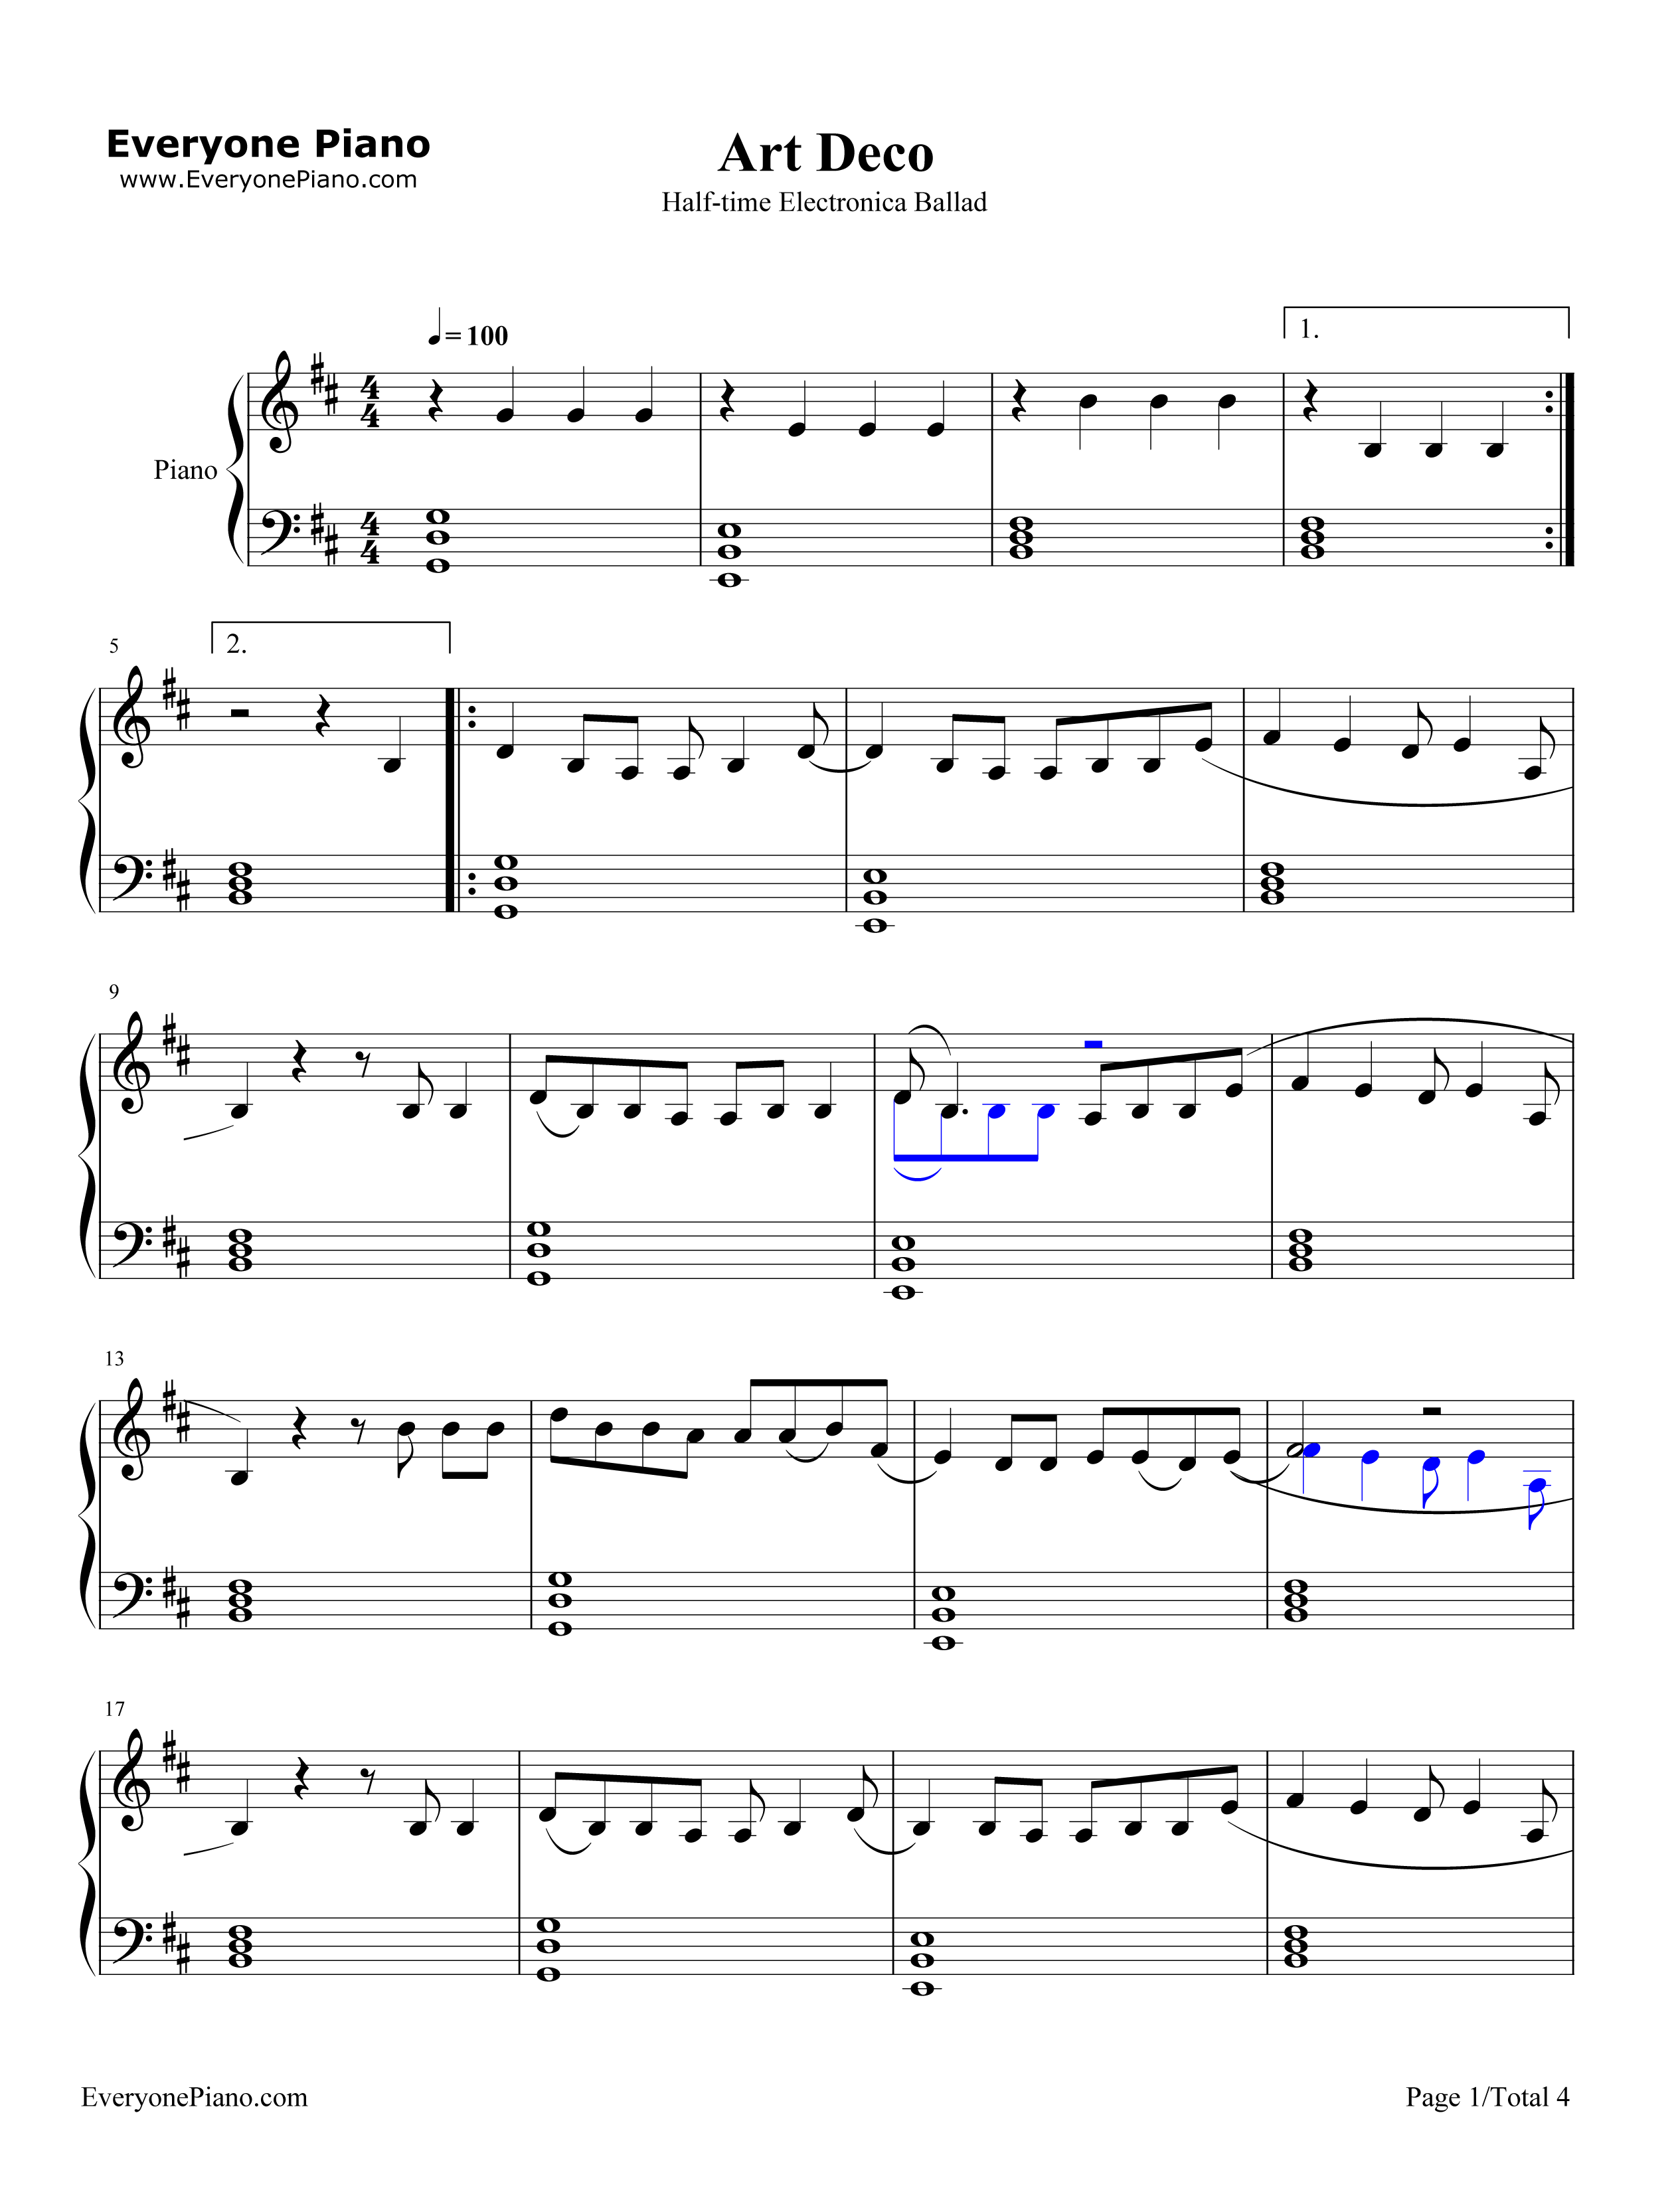 Art Deco Lana Del Rey Stave Preview 1 Free Piano Sheet